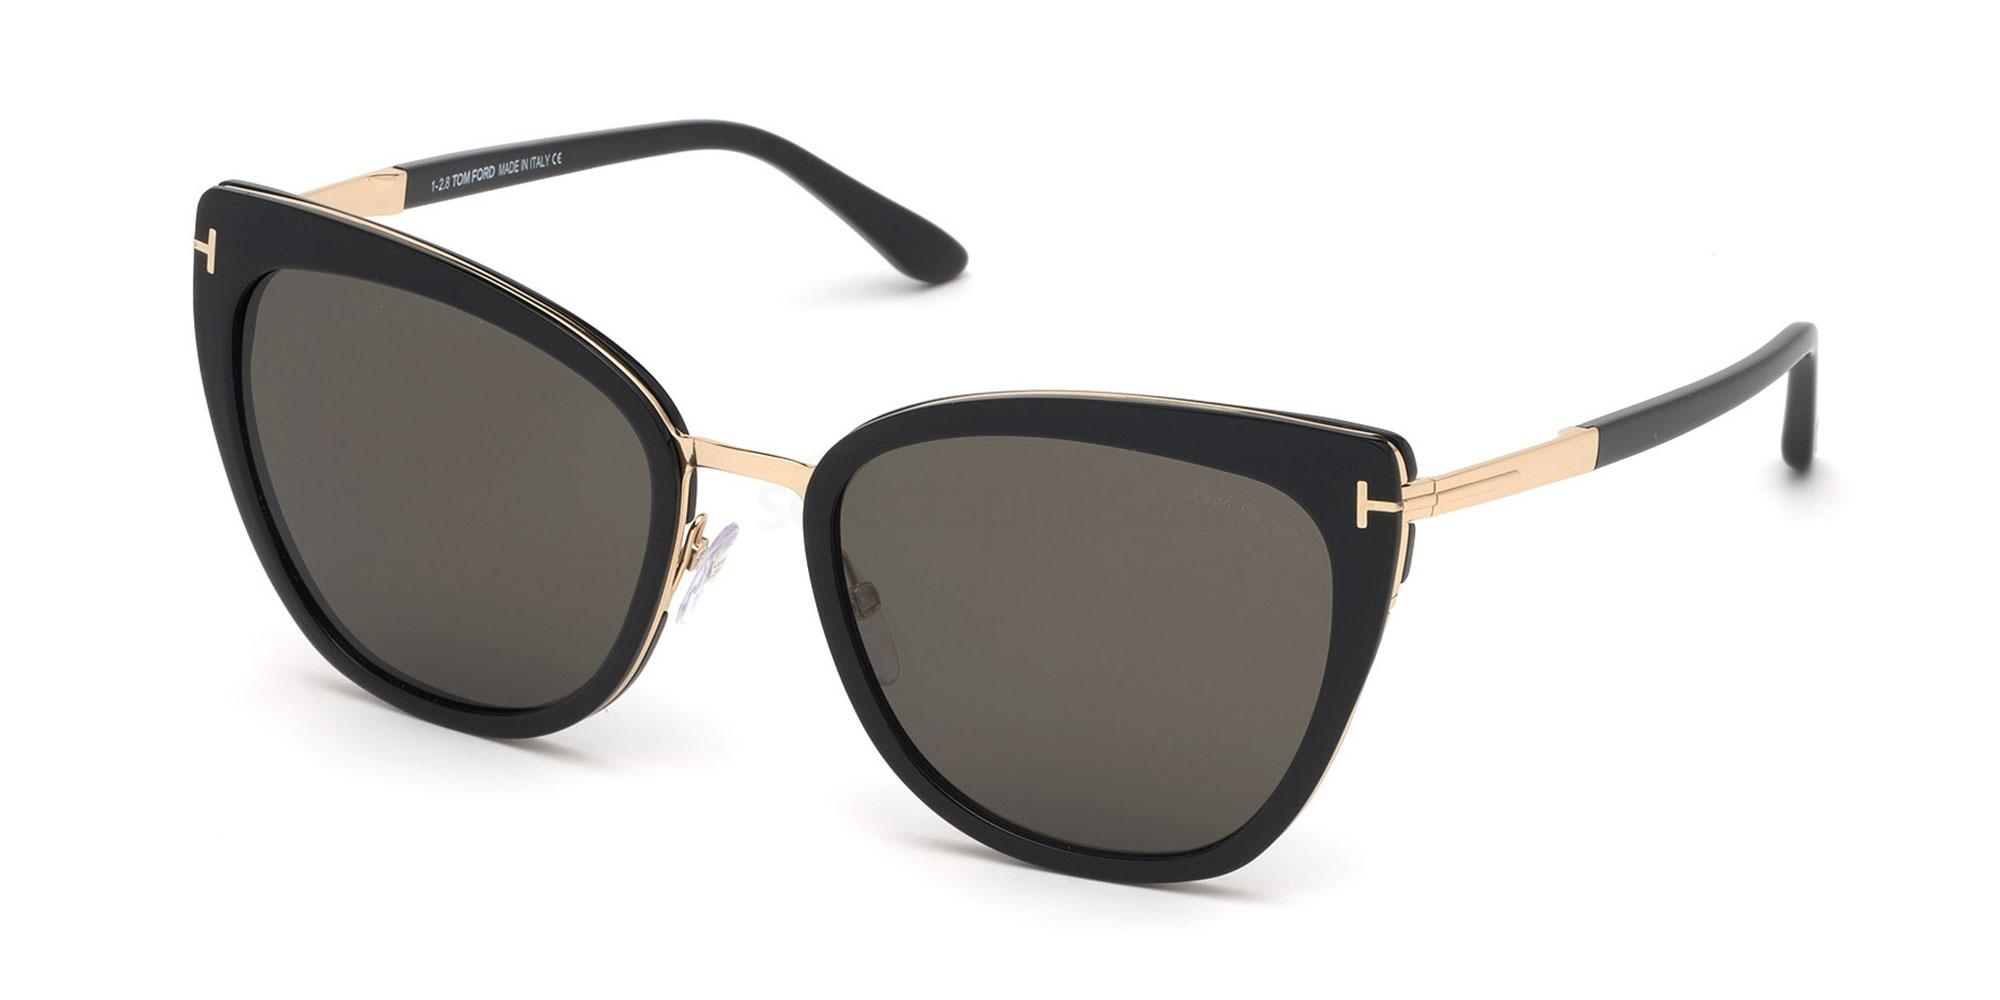 01A FT0717 Sunglasses, Tom Ford